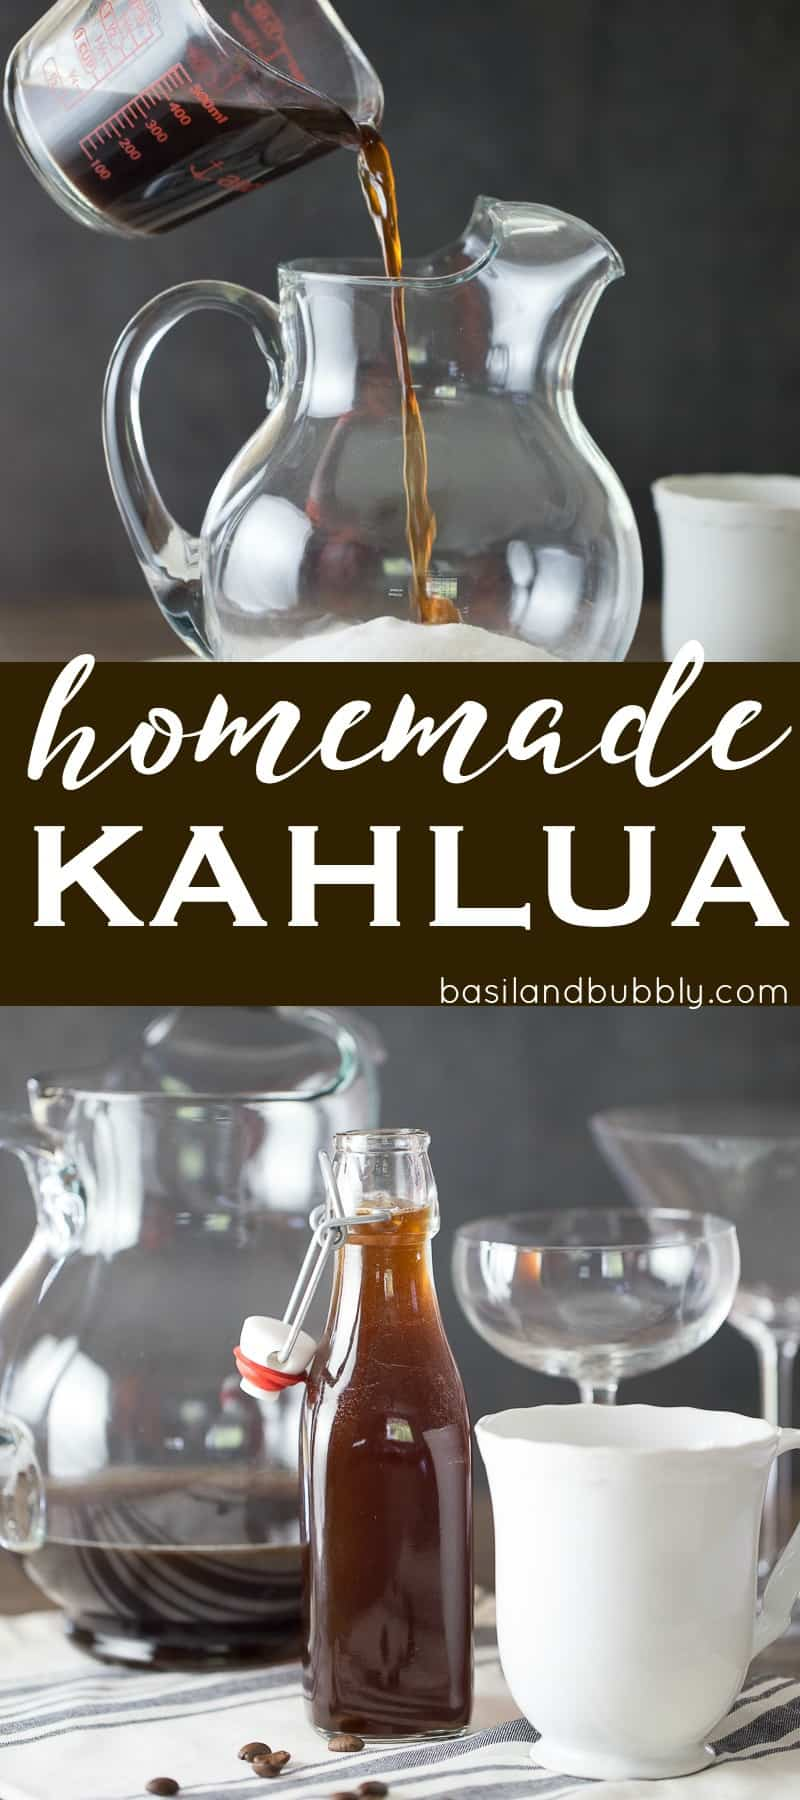 Quick Homemade Kahlua Recipe with Rum